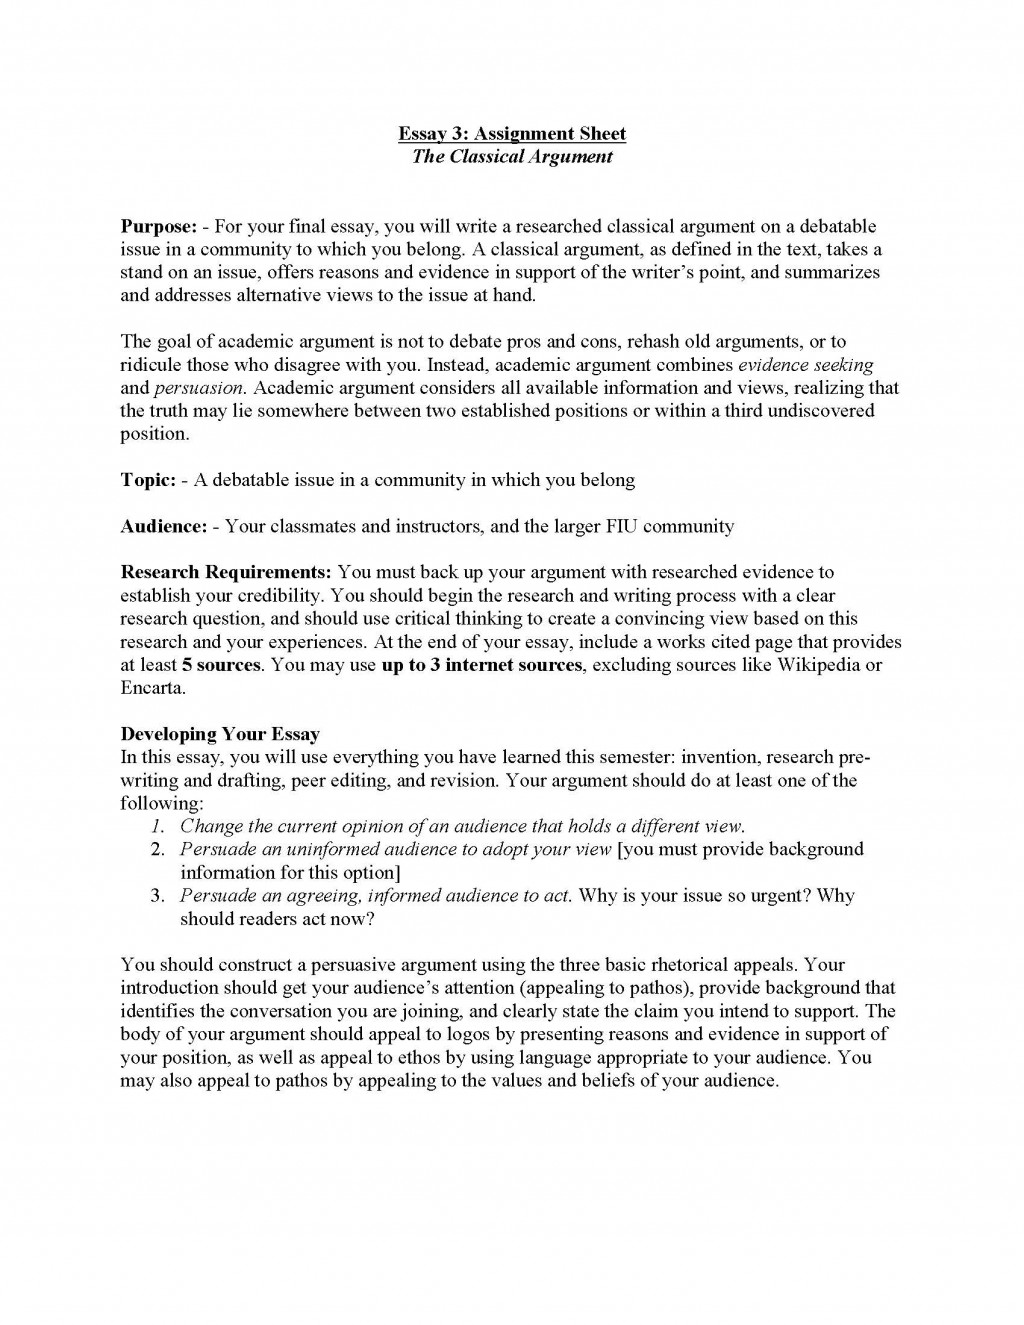 009 Essay Example Classical Argument Unit Assignment Page 1 Staggering Rogerian Topics Large